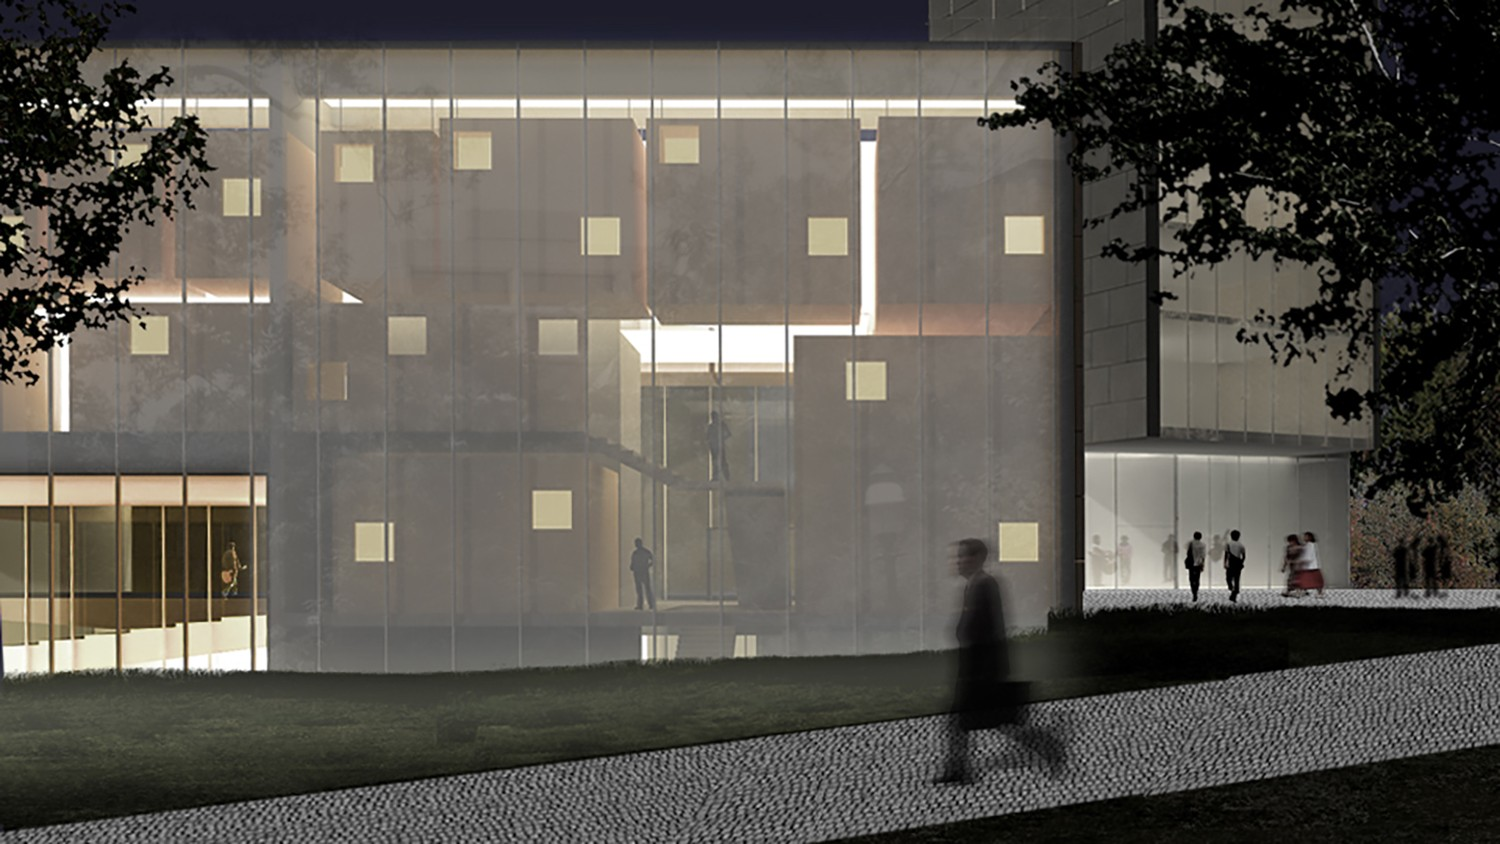 https://s3.us-east-2.amazonaws.com/steven-holl/uploads/projects/project-images/StevenHollArchitects_LCA_Music Building_1_WH.jpg